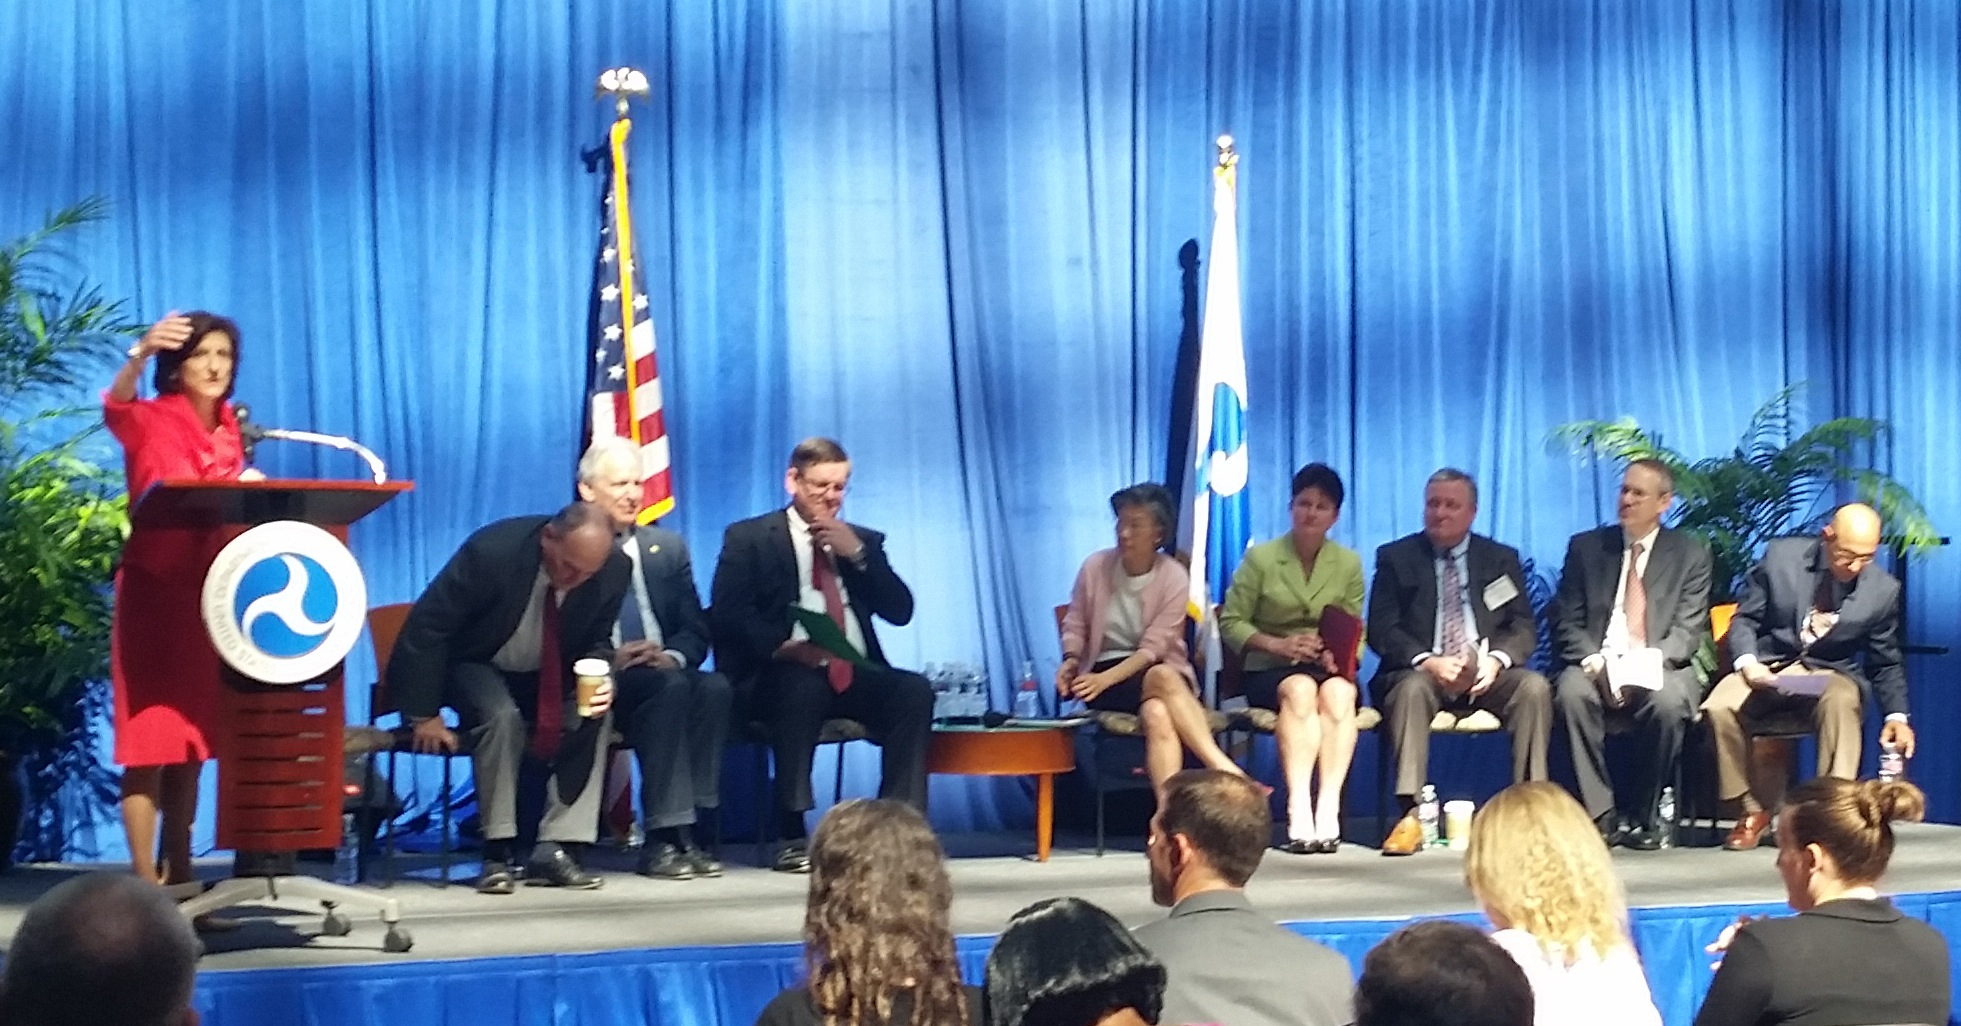 Full size image: Leaders of the Datapalooza event speaking to all of the attendees